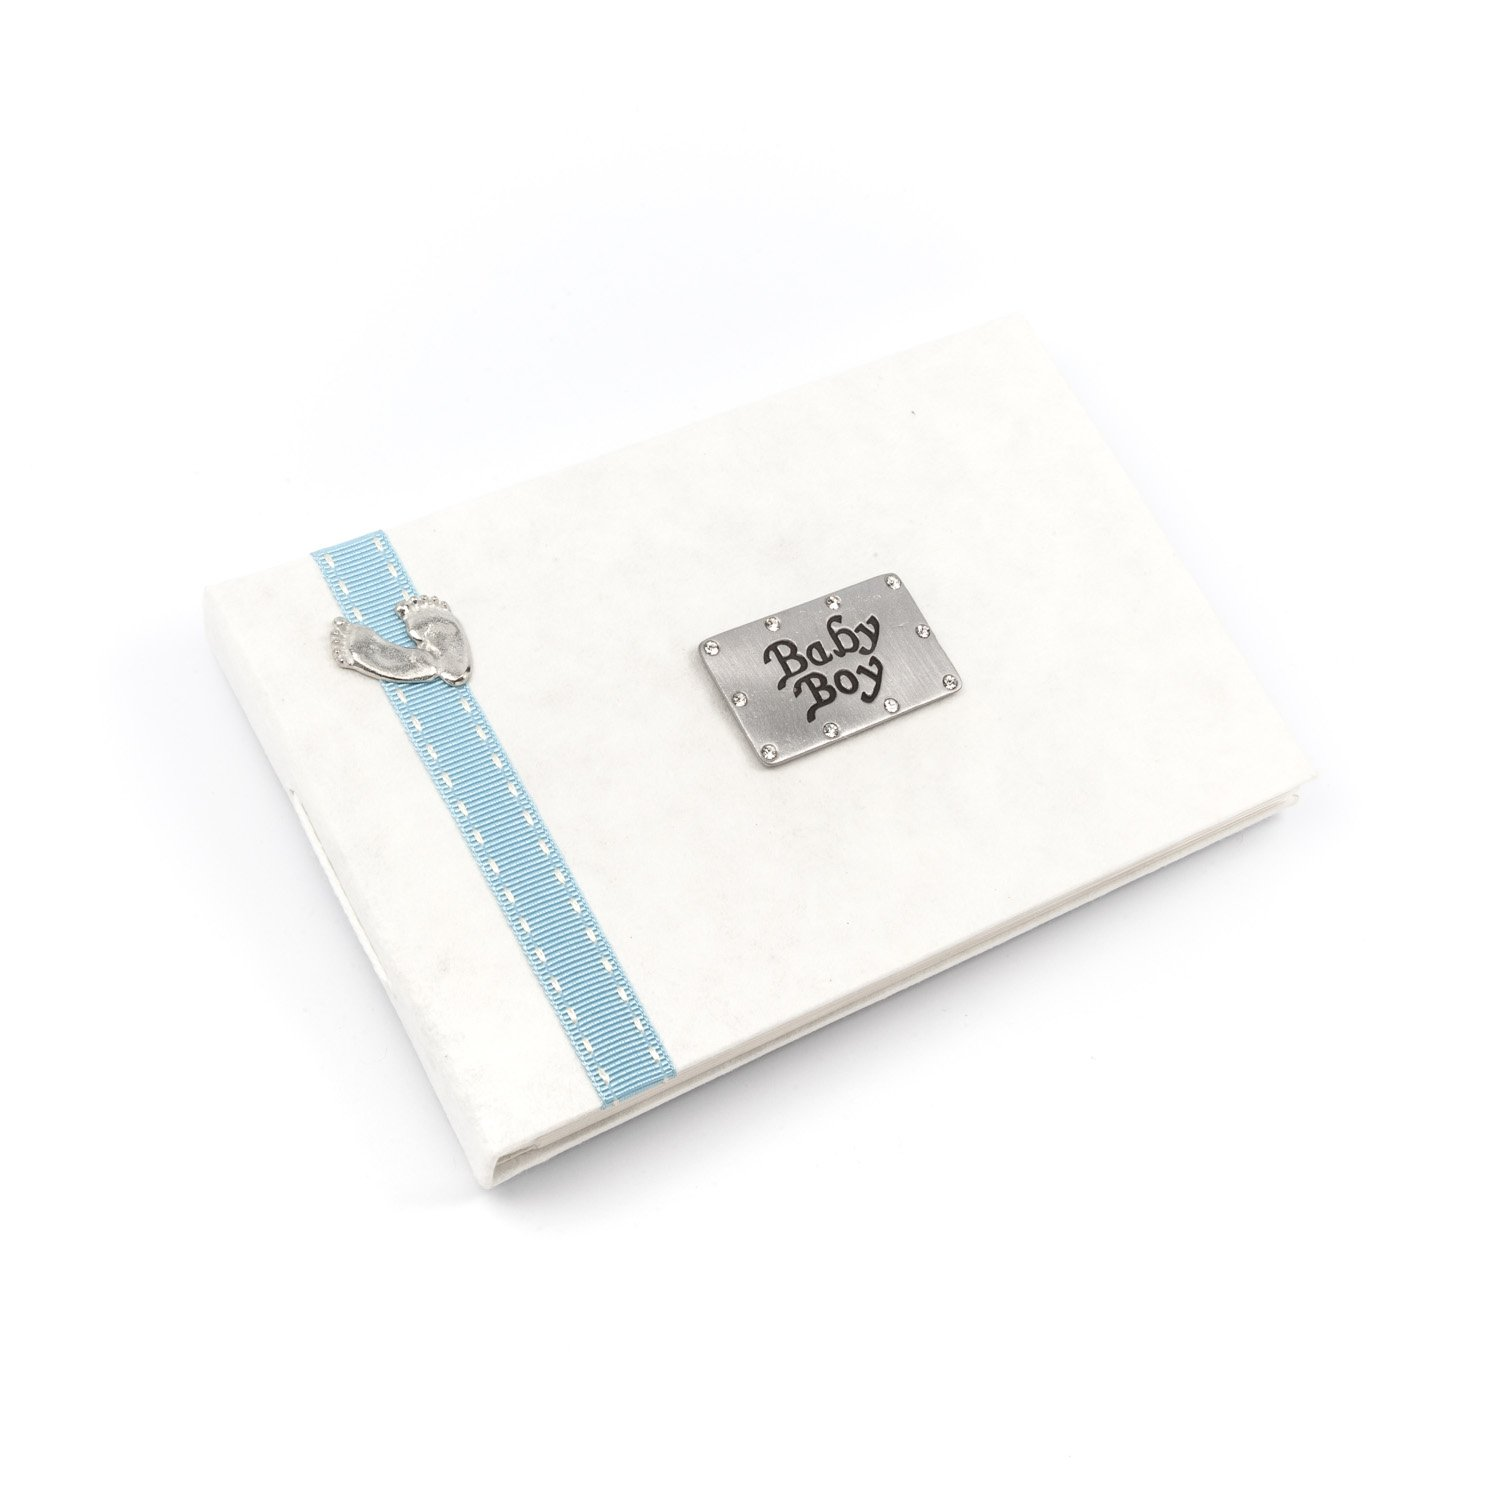 Baby Boy - photo album with pewter footprint design and blue stitched ribbon Metal Planet Baby Boy ribbon/feet album